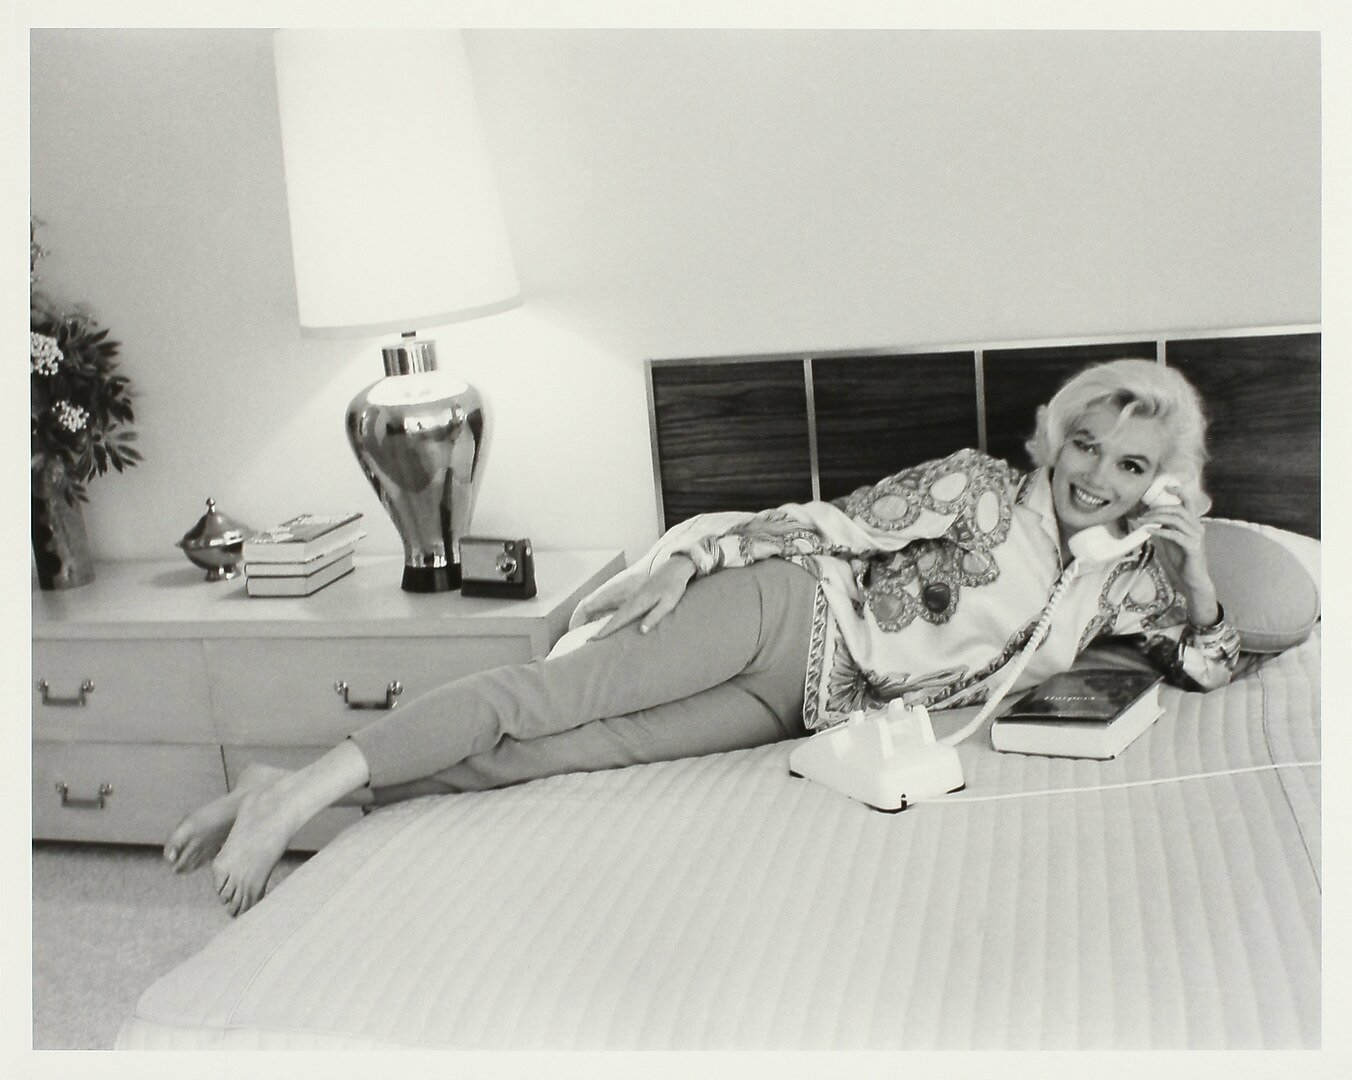 1962-06-tim_leimert_house-pucci_jacket-bedroom-by_barris-031-1